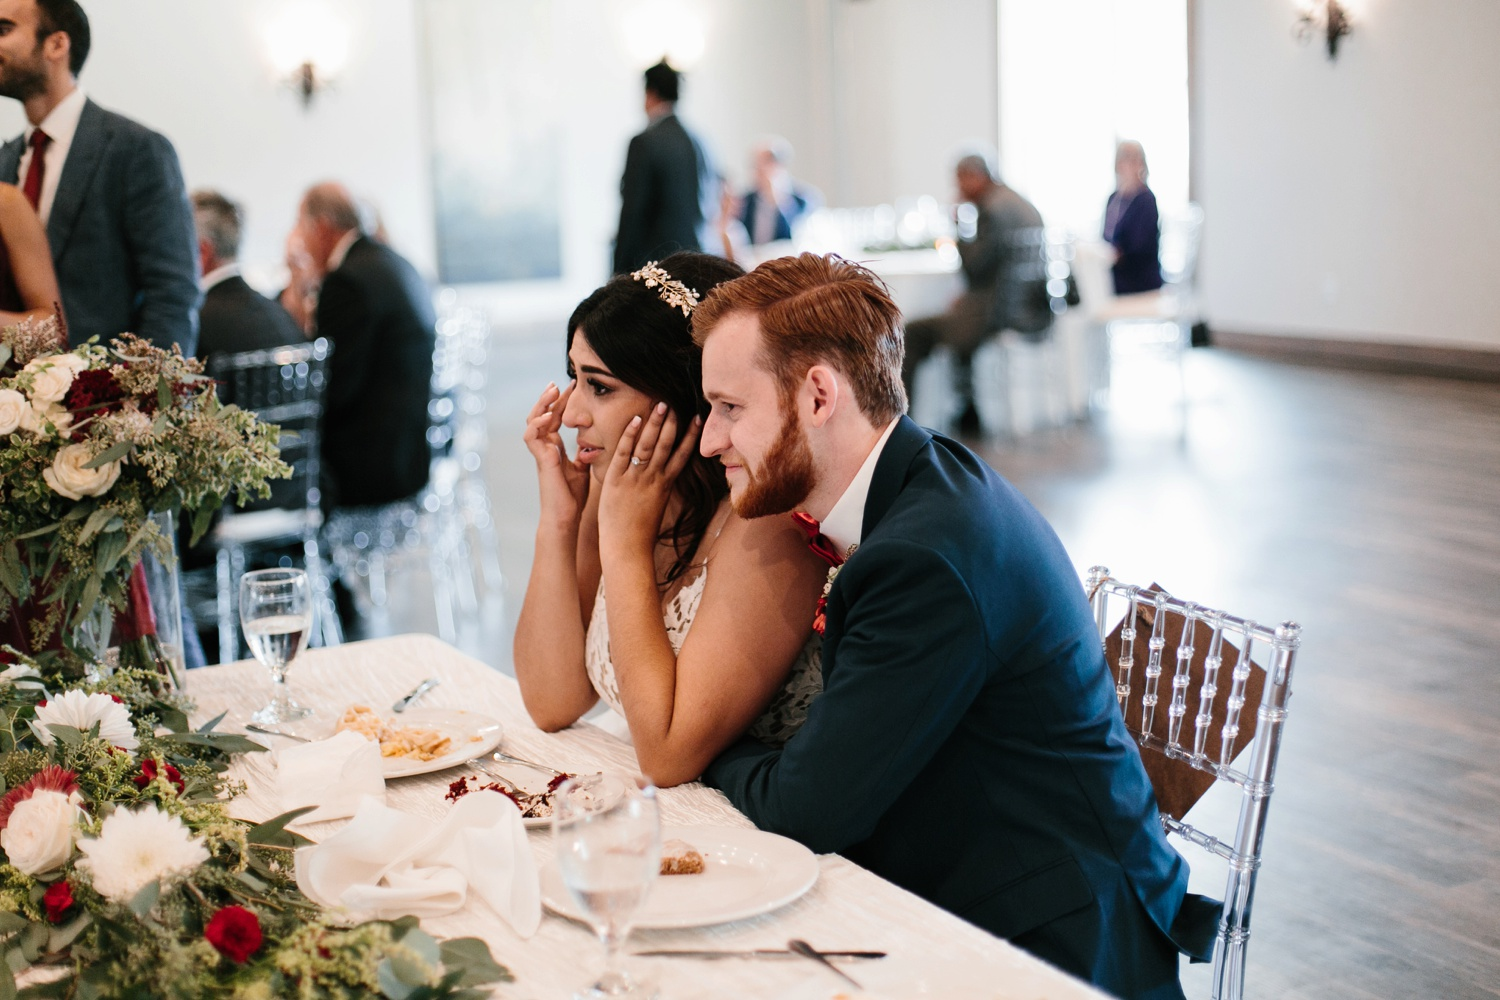 Grant + Lysette | a vibrant, deep burgundy and navy, and mixed metals wedding at Hidden Pines Chapel by North Texas Wedding Photographer Rachel Meagan Photography 154